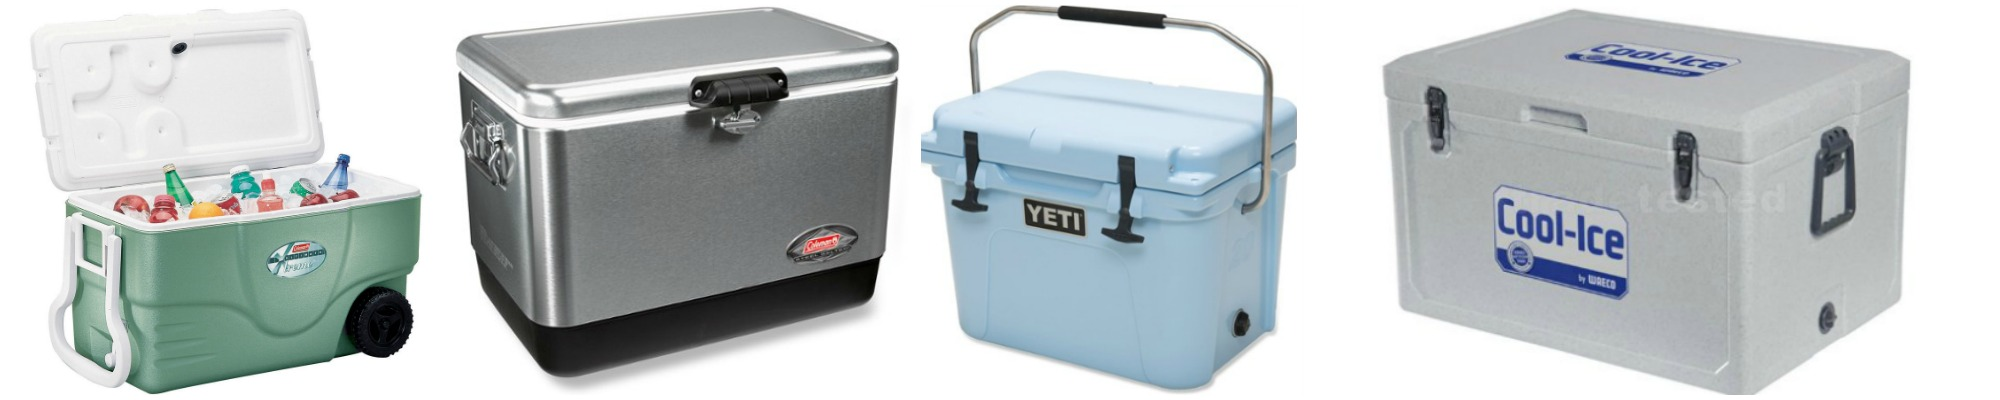 Portable Fridges - there is a huge range of portable fridges, from highly efficient, well insulated dual zone (and very expensive) models, right through to your good old esky. Let me help you understand how they're all different. Esky / Chilly bin / Cooler / Ice box